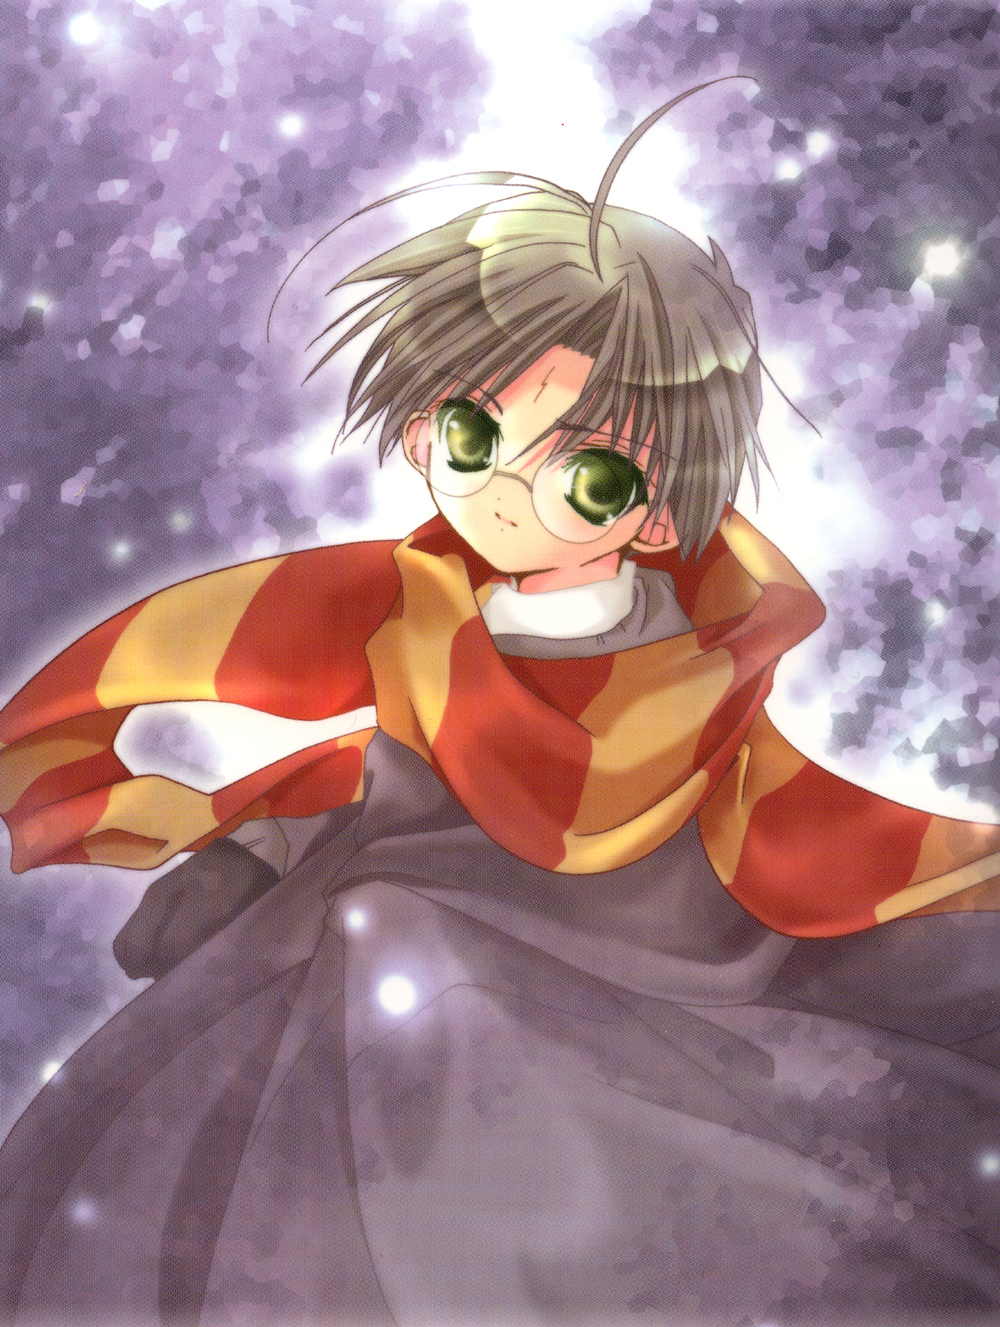 Anime Characters Hogwarts Houses : Harry potter image  zerochan anime board